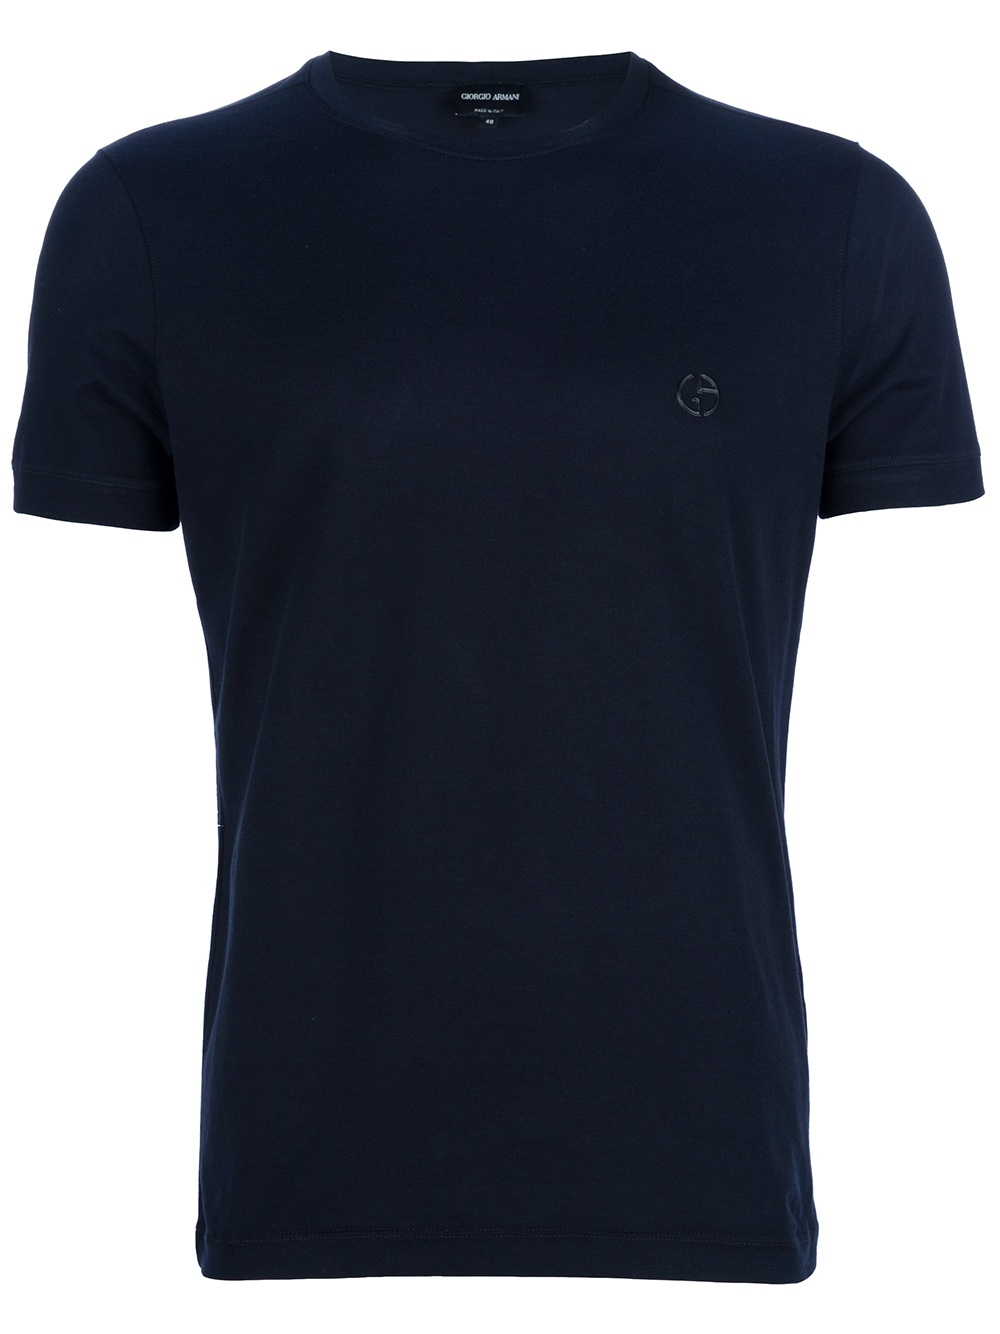 giorgio armani logo t shirt in blue for men navy lyst. Black Bedroom Furniture Sets. Home Design Ideas